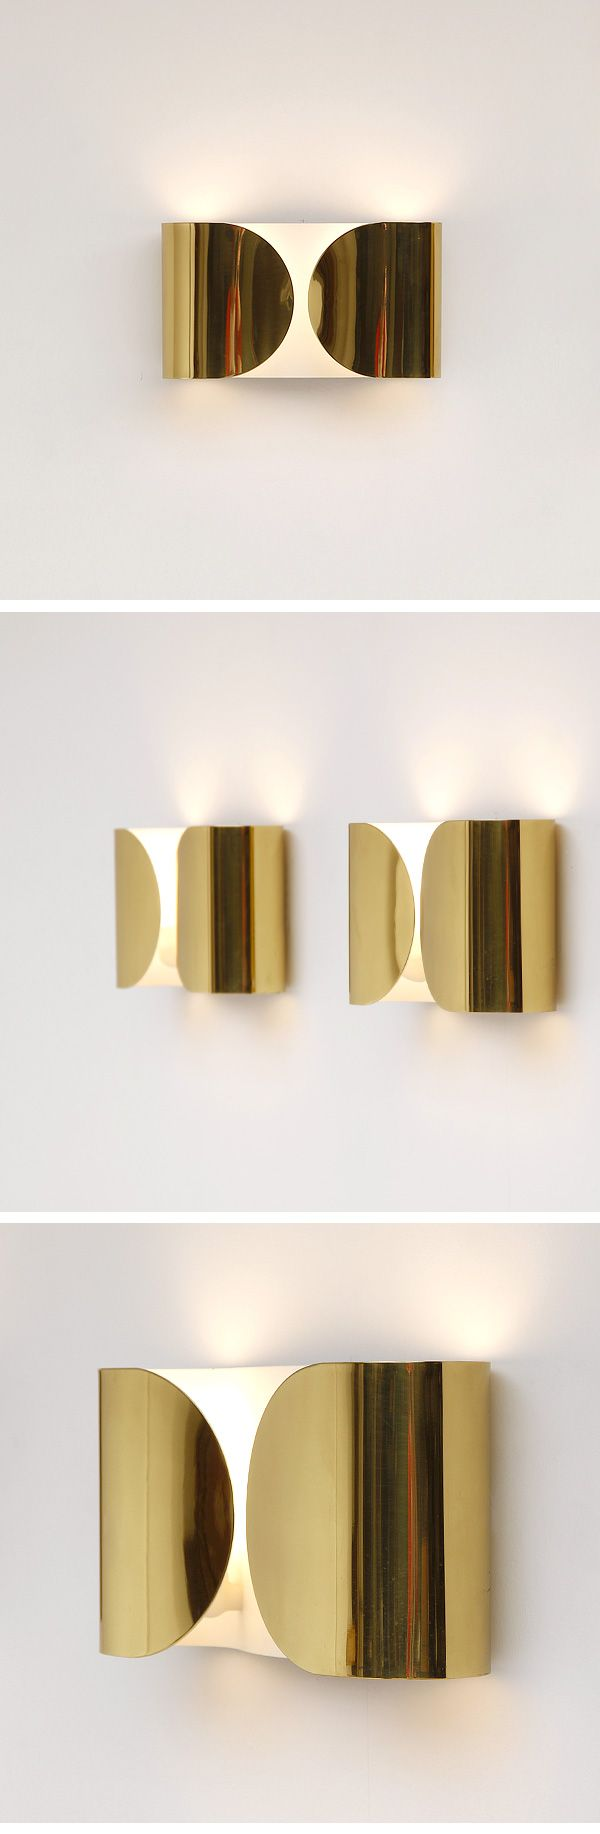 contemporary lighting  golden sconces  stainless steel and steel - contemporary lighting  golden sconces